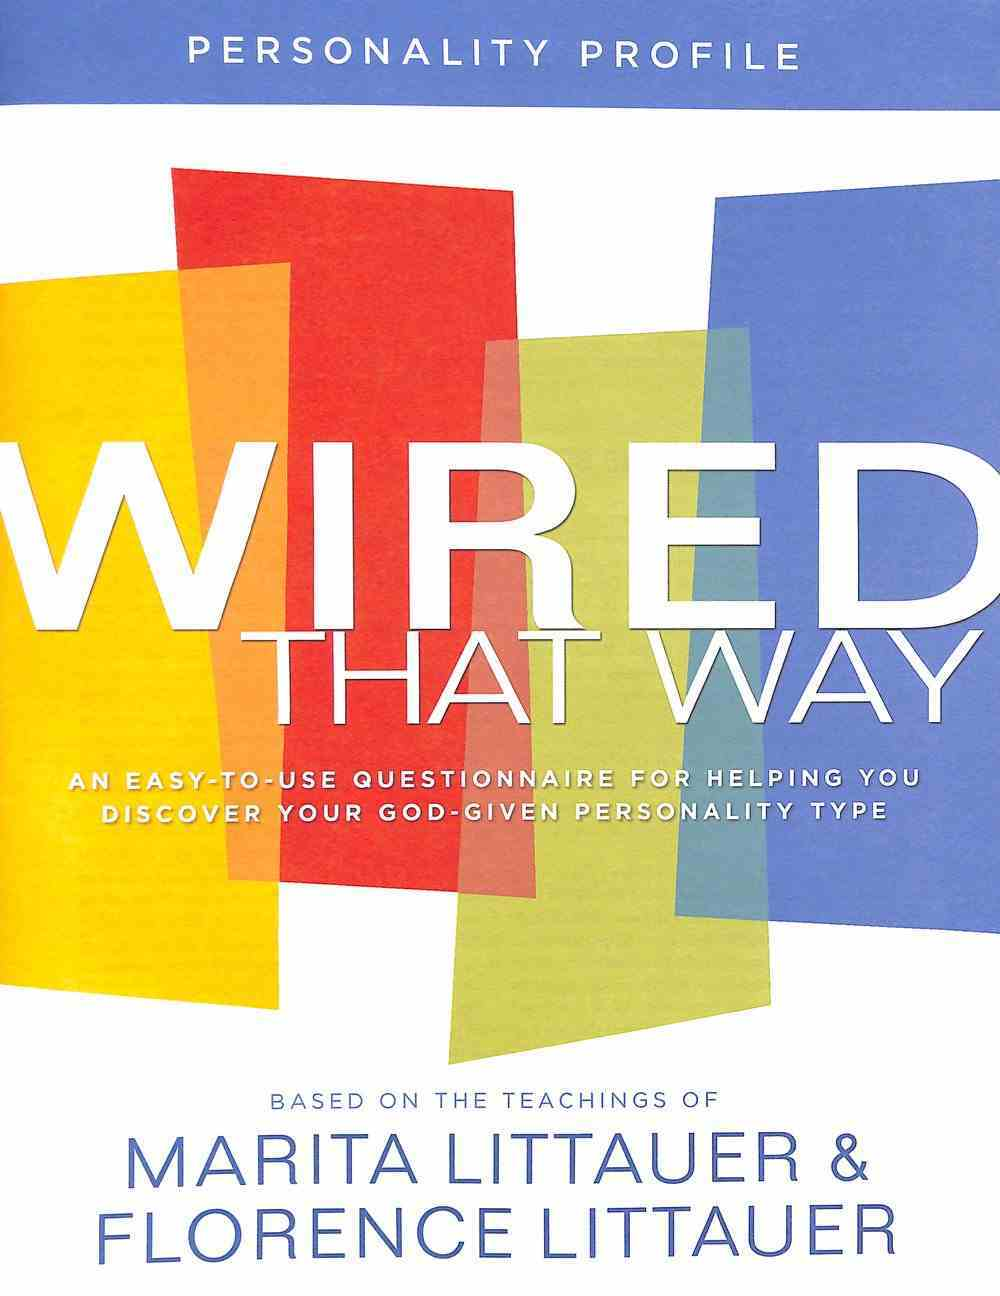 Wired That Way: An Easy-To-Use Questionnaire For Helping You Discover Your God-Given Personality Type (Personality Profile) Paperback